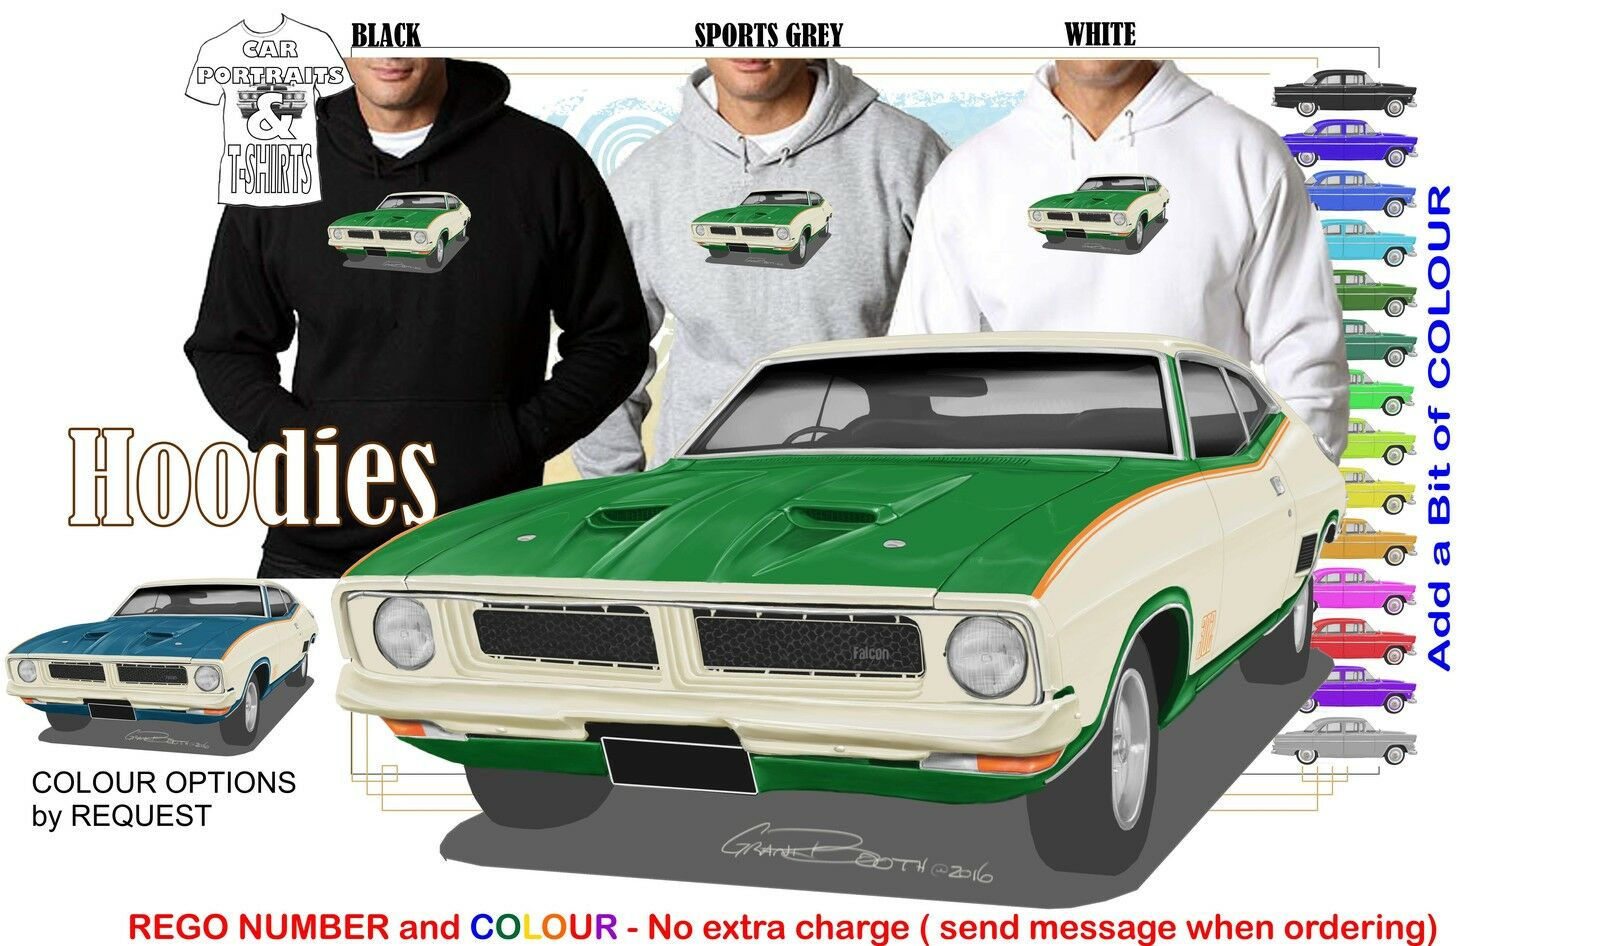 73-76 XB GOSS FALCON COUPE HOODIE ILLUSTRATED CLASSIC RETRO MUSCLE SPORTS CAR